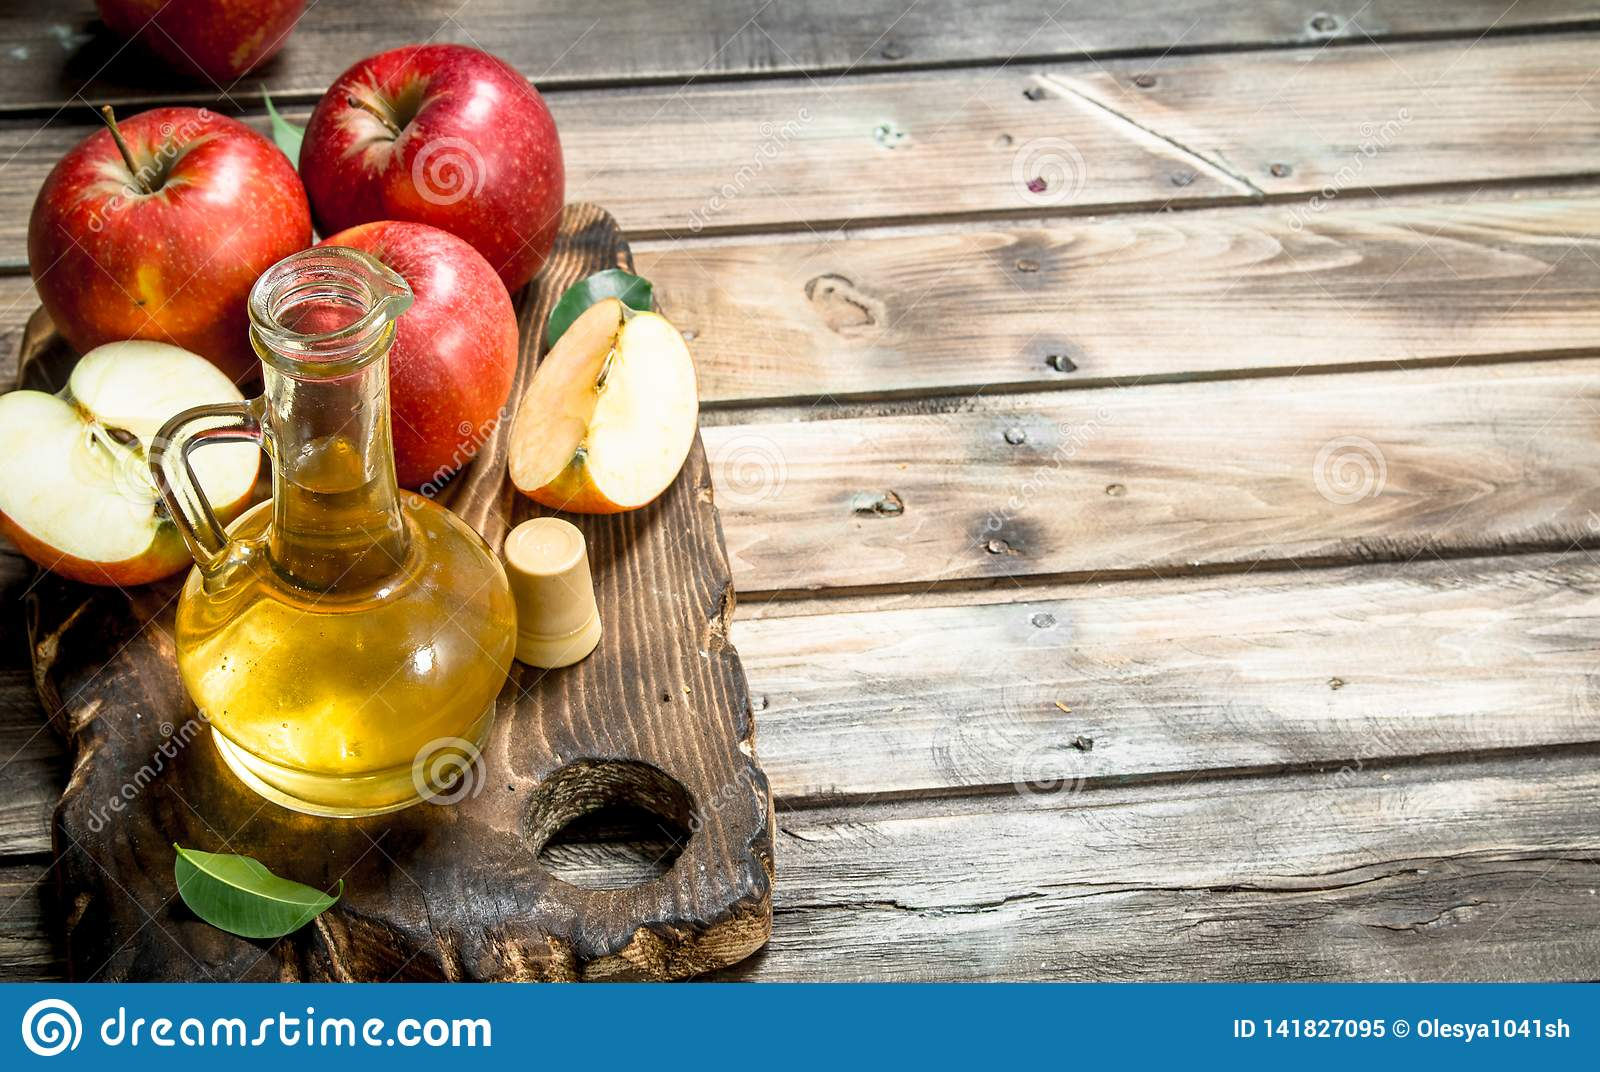 Apple cider vinegar with fresh red apples on a cutting Board